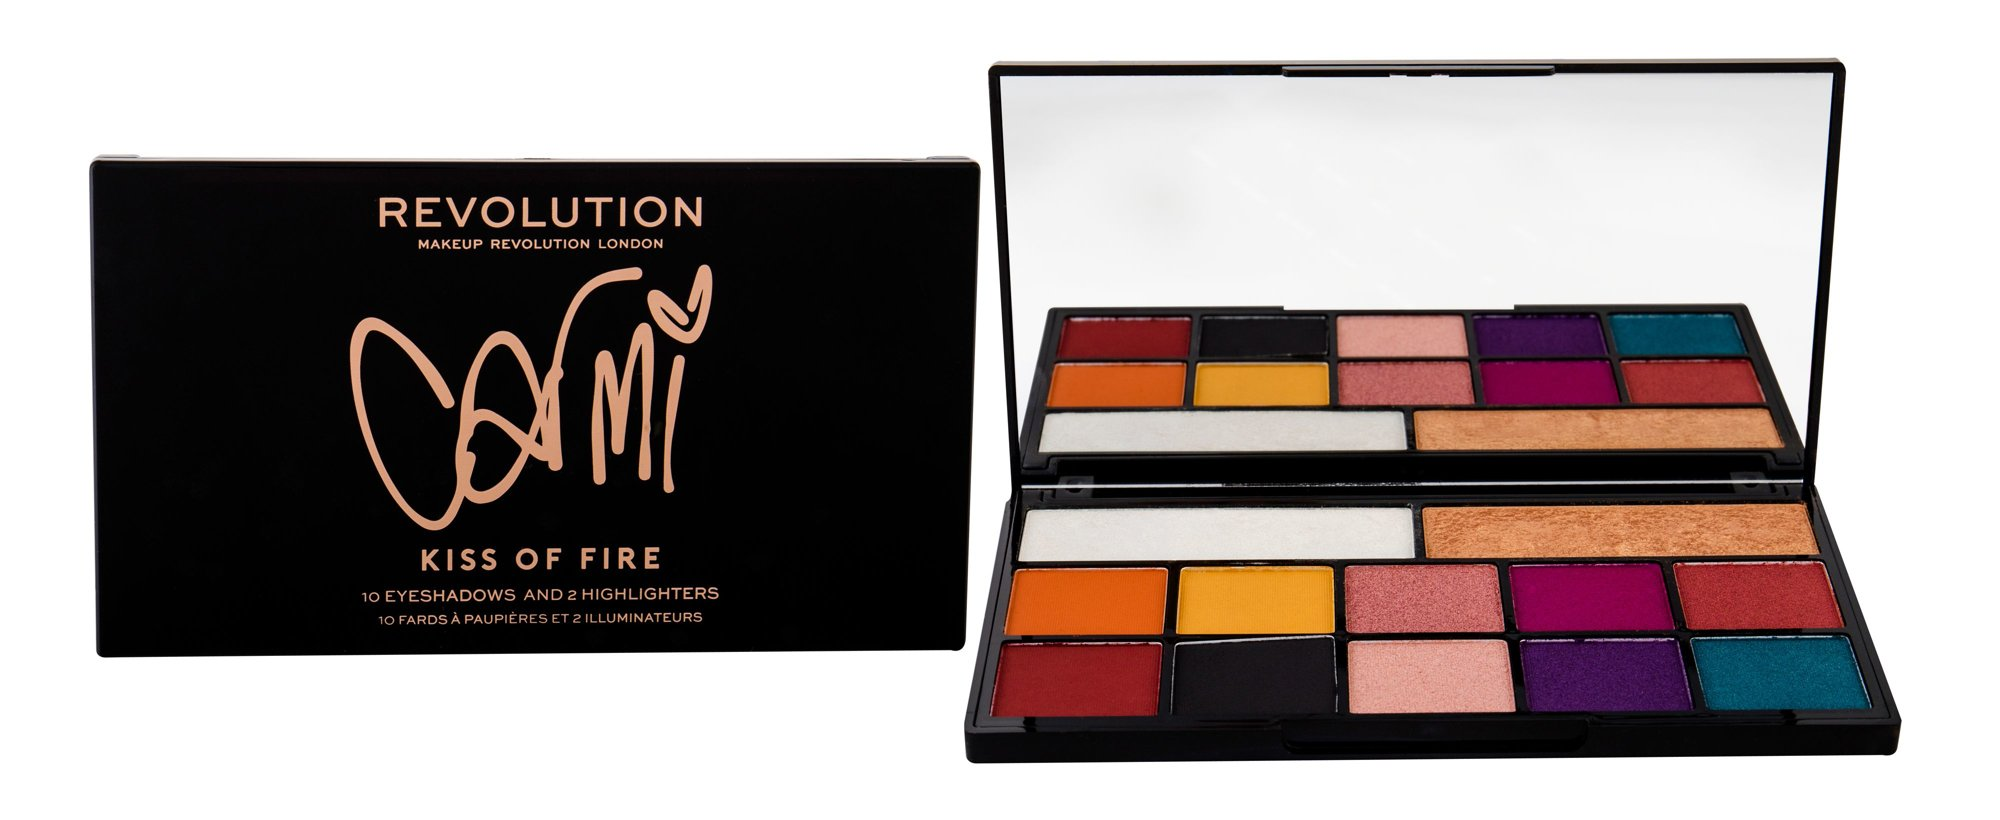 Makeup Revolution London X Carmi Eye Shadow 27ml Kiss Of Fire